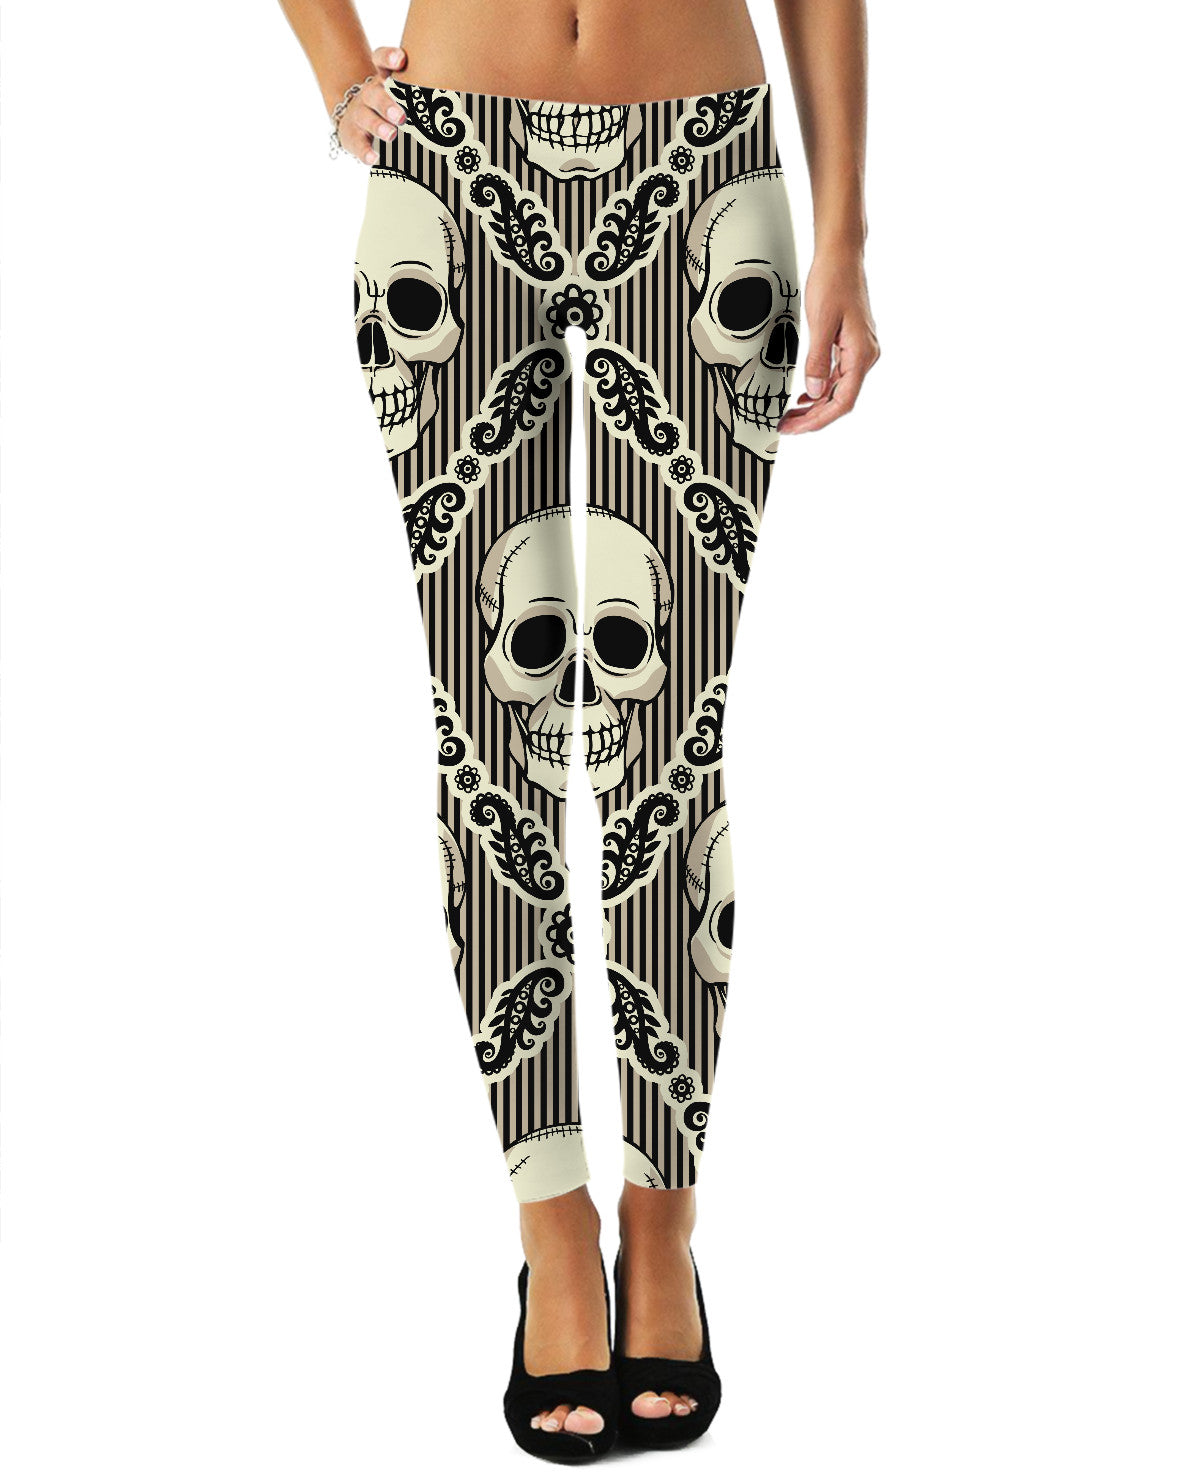 Diamond Tiled Skull Leggings